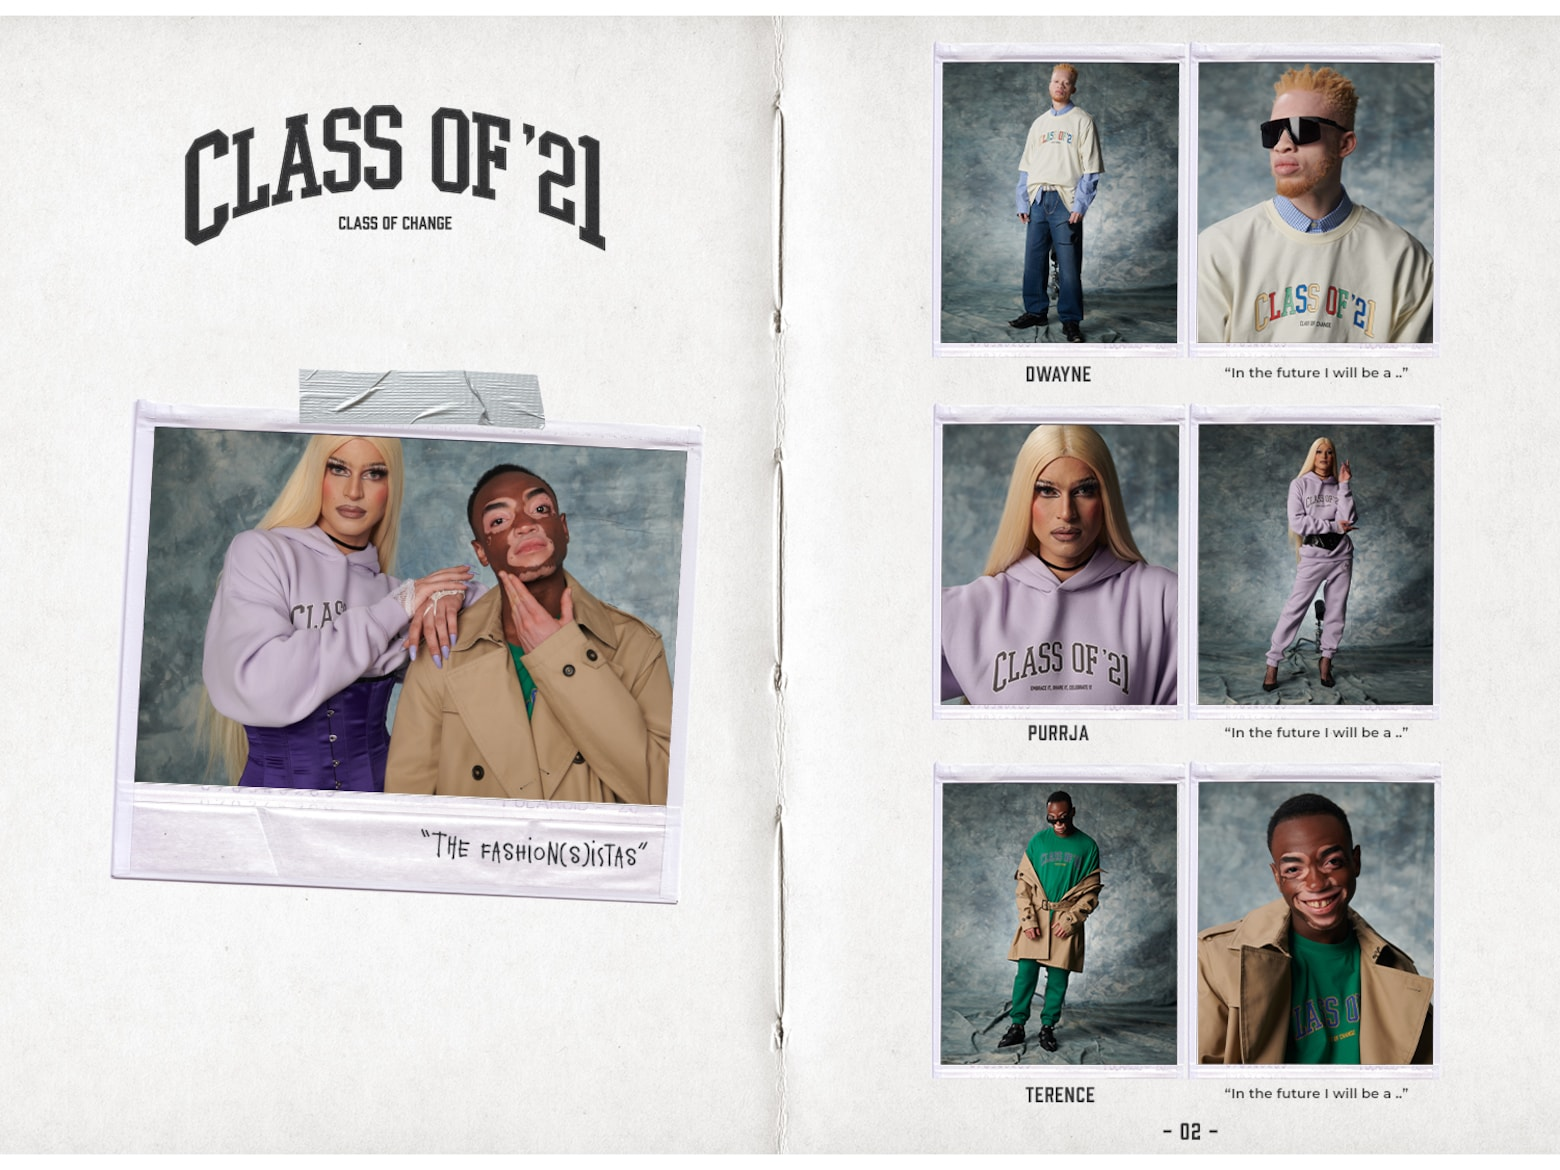 ABOUT YOU LIMITED Class of '21 - The New Faces of Fashion